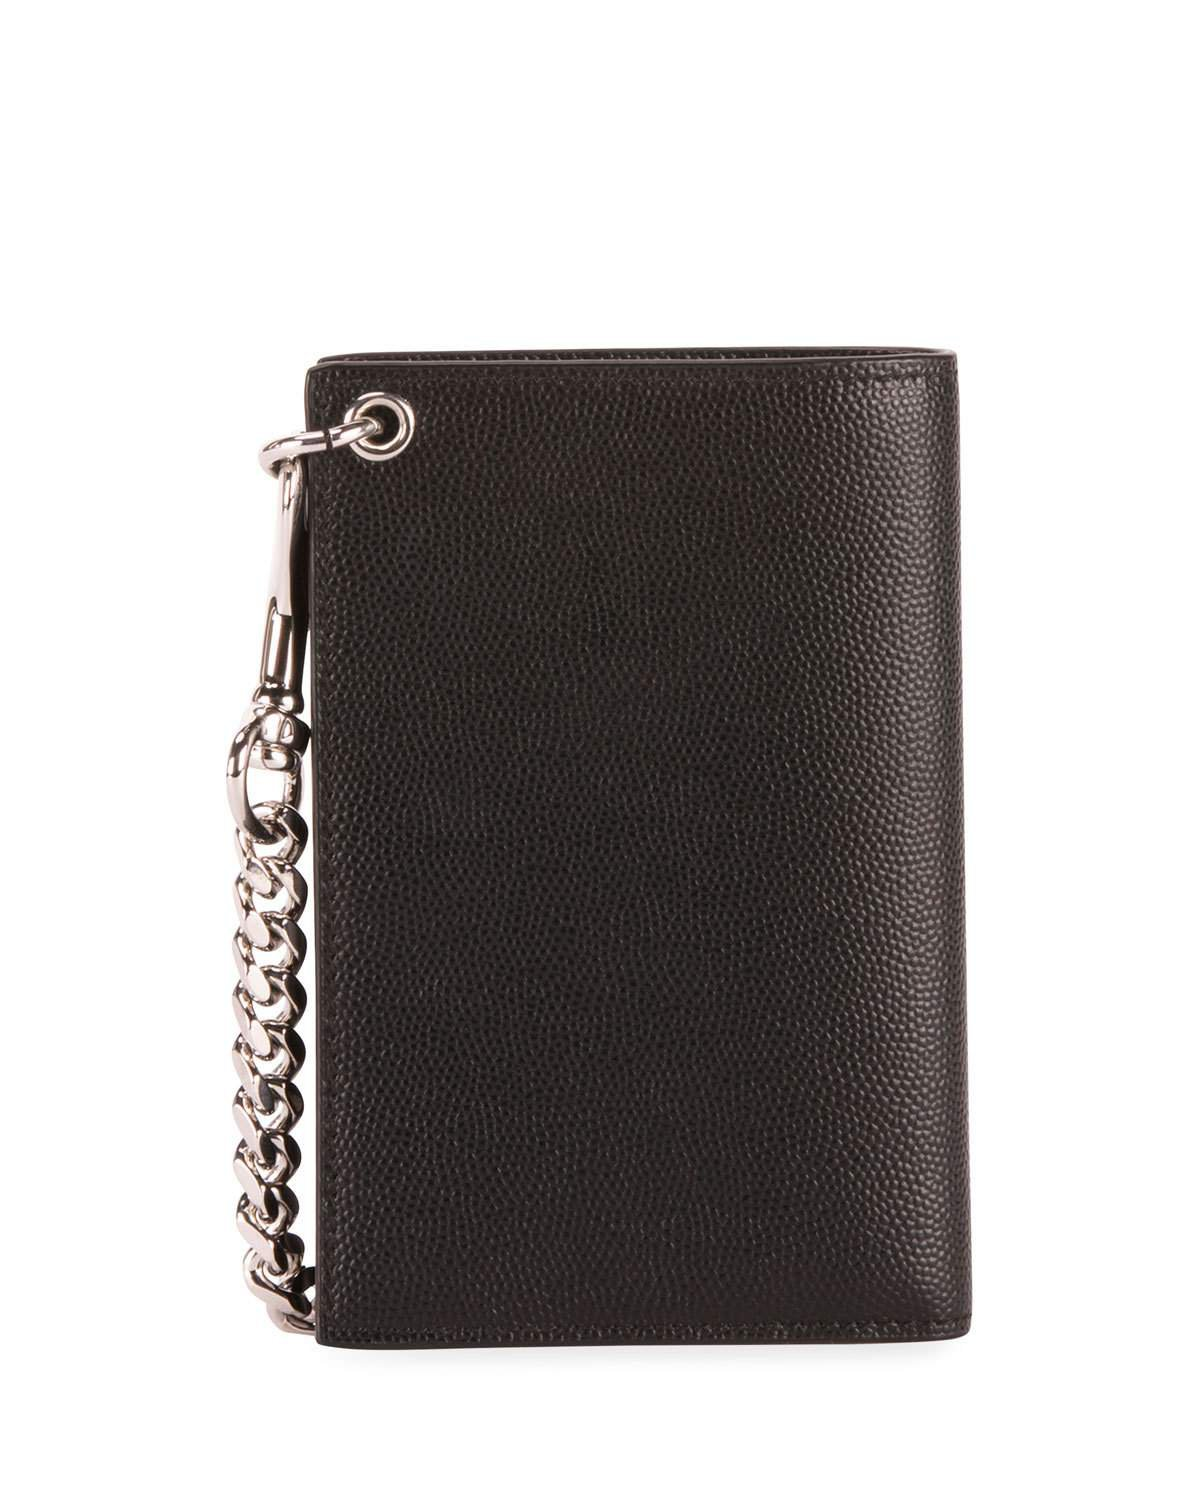 Saint Laurent North South Leather Chain Wallet